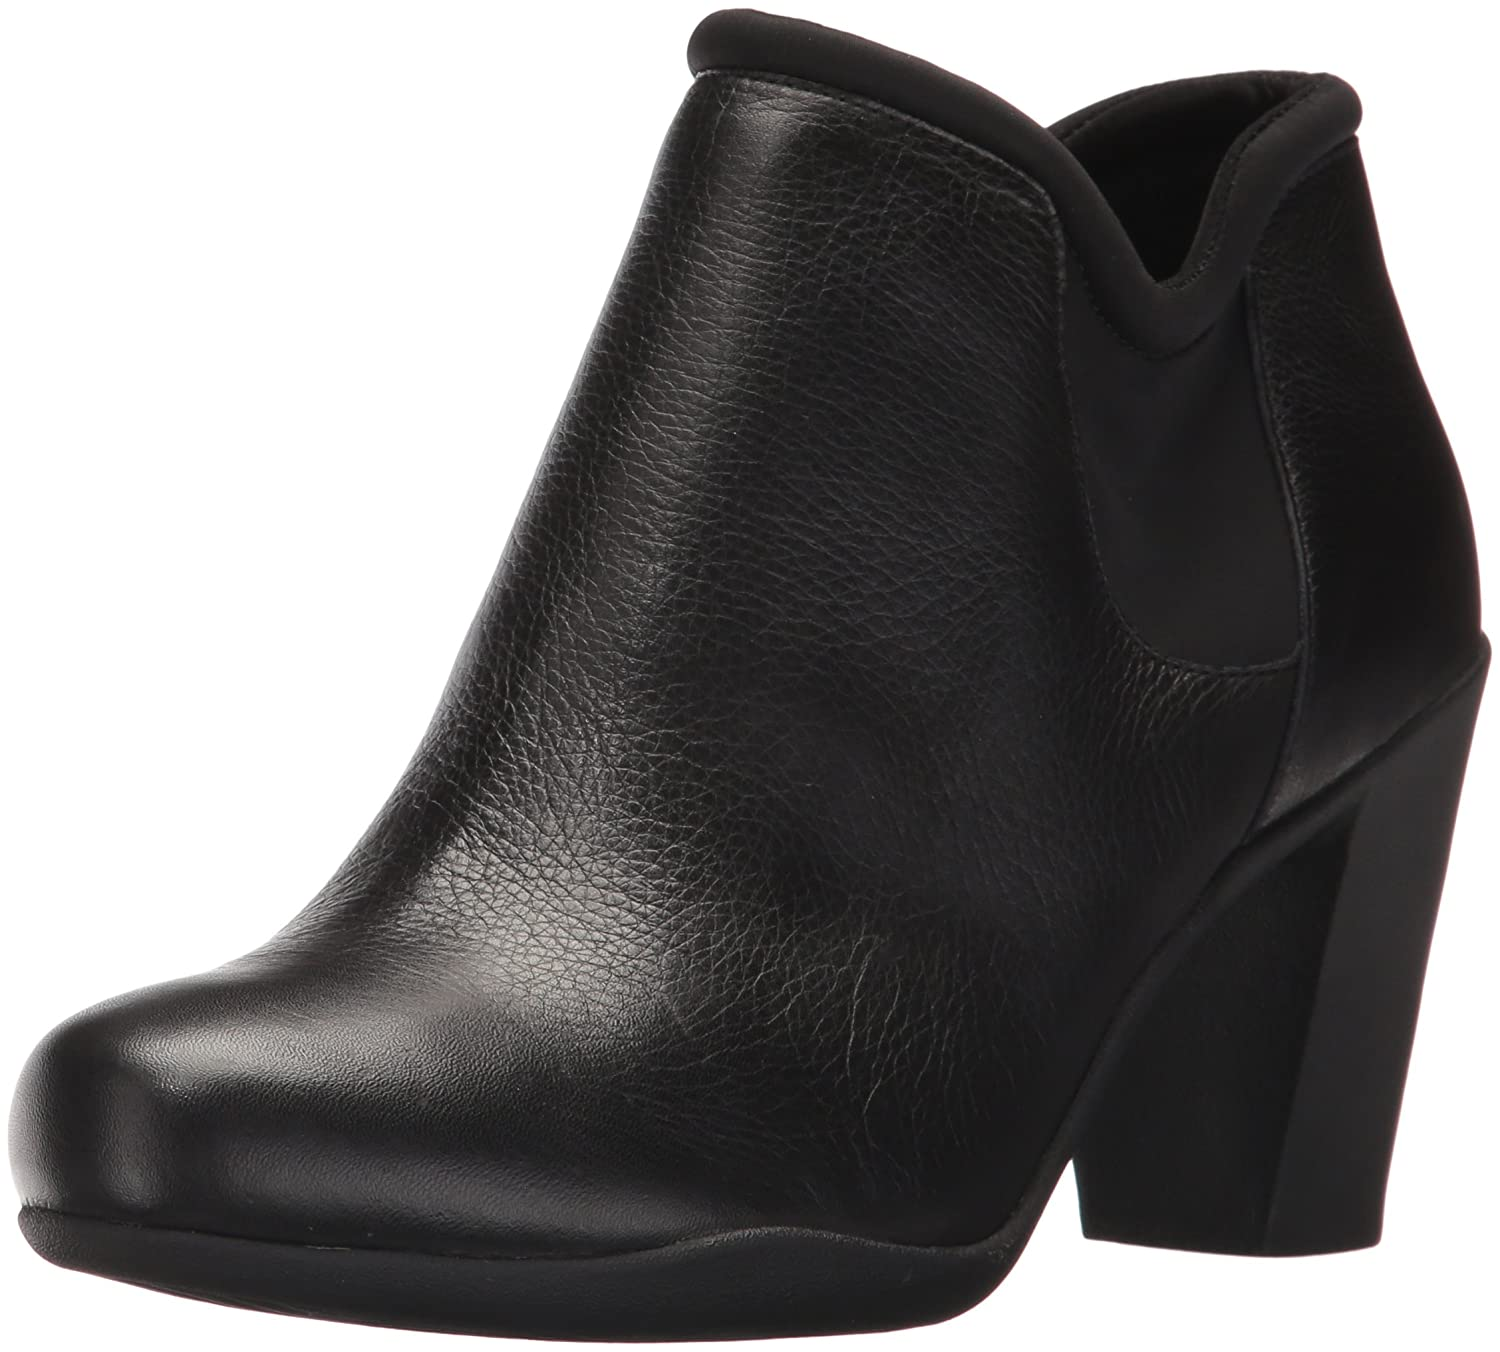 CLARKS Women's Adya Bella Ankle Bootie B01N6IXPQV 10 B(M) US|Black Leather